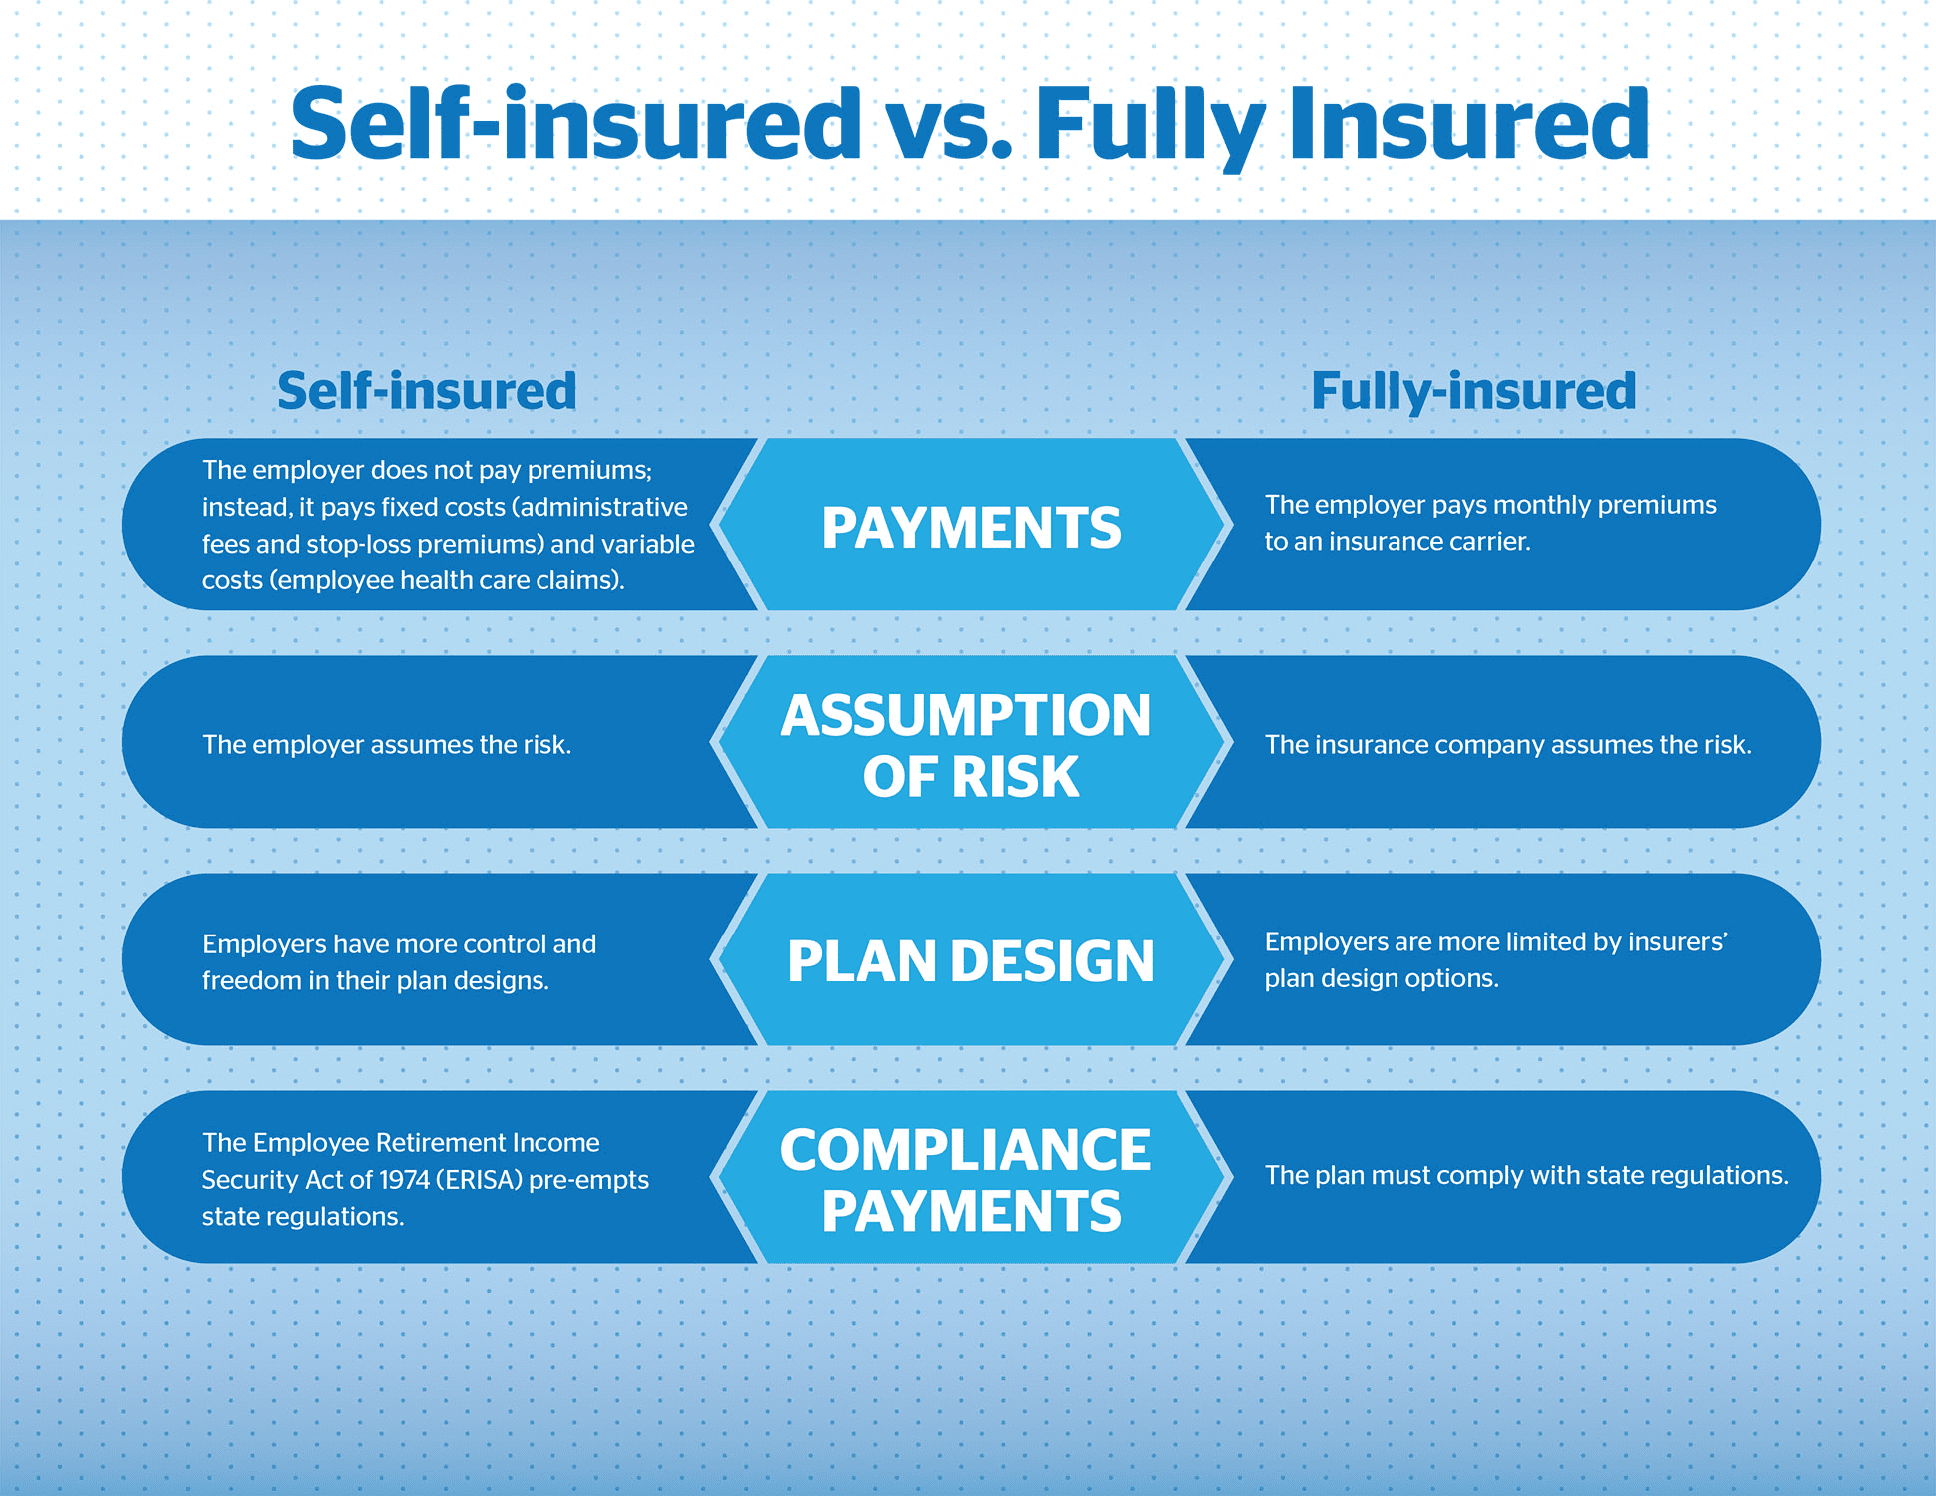 Self-Insured vs. Fully Insured